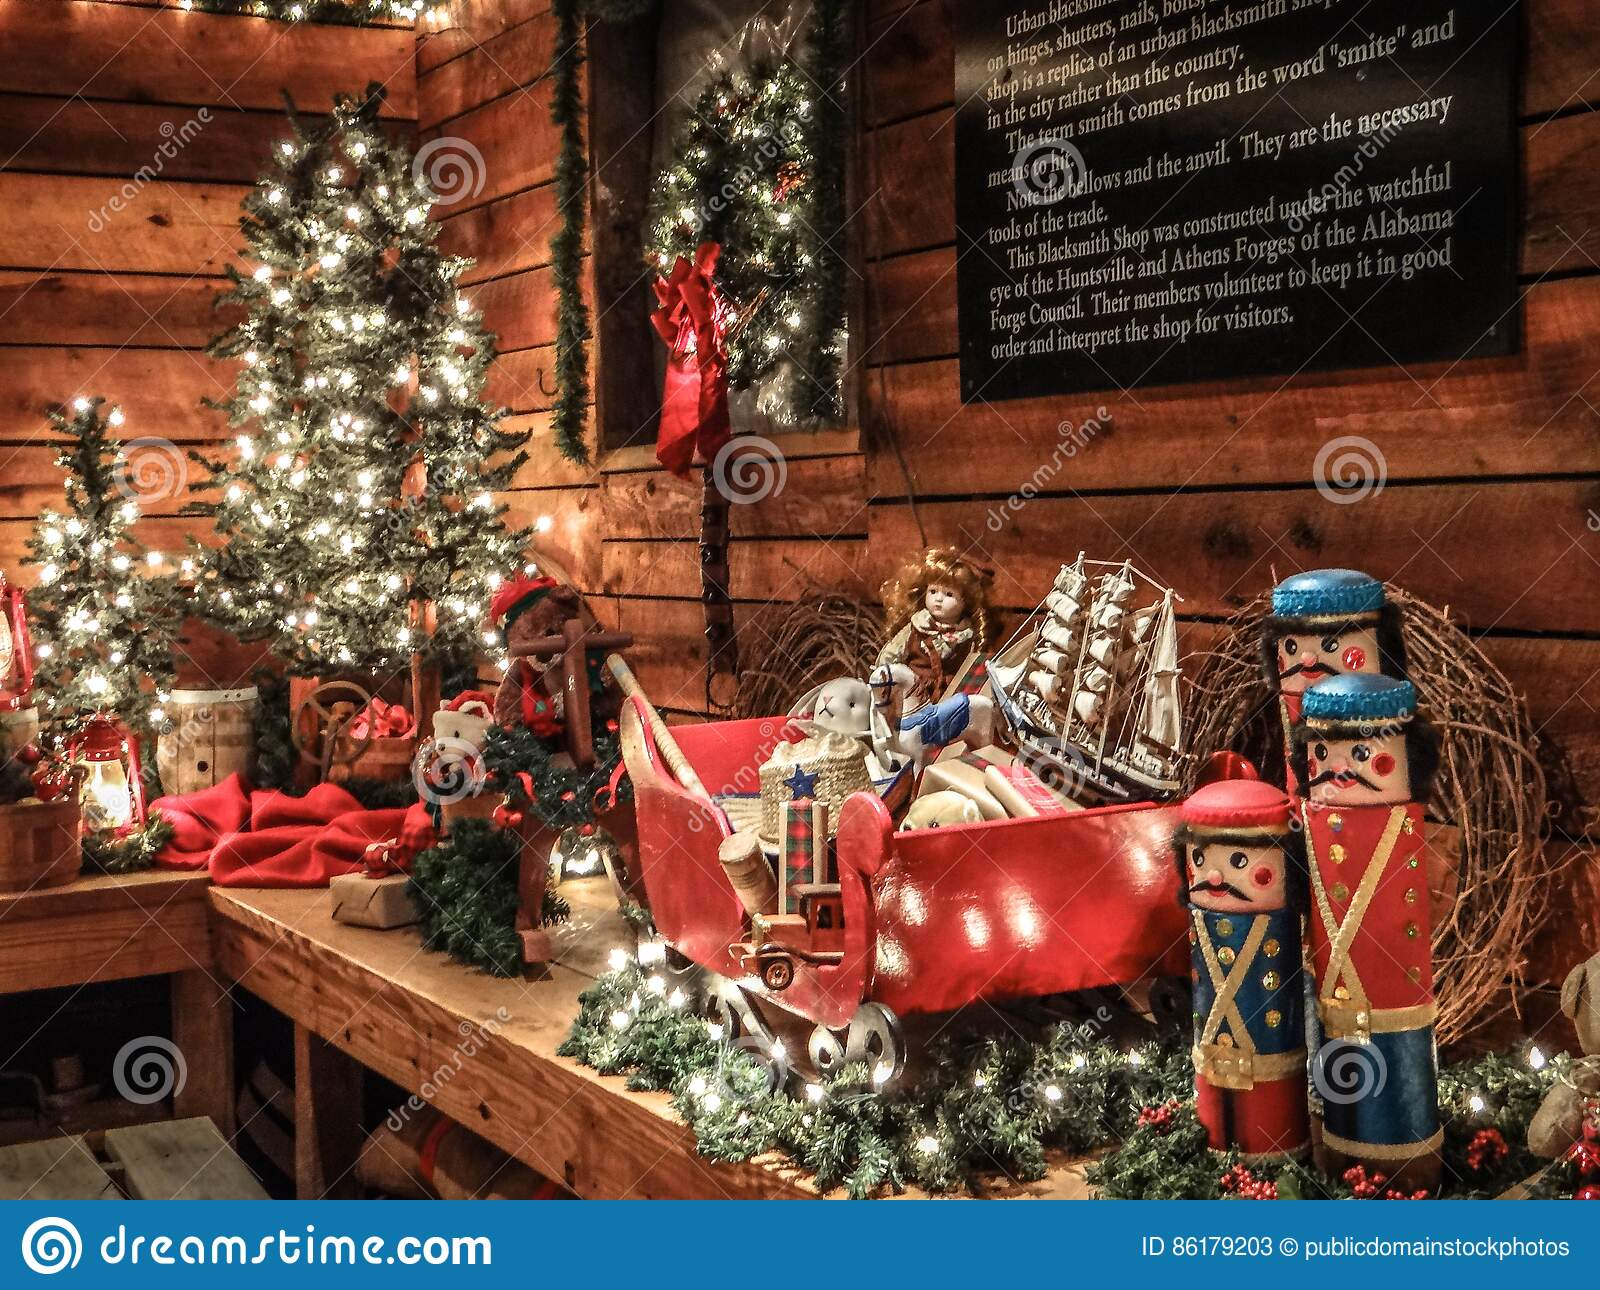 Alabama Christmas.Alabama Christmas Decorations Huntsville Picture Image